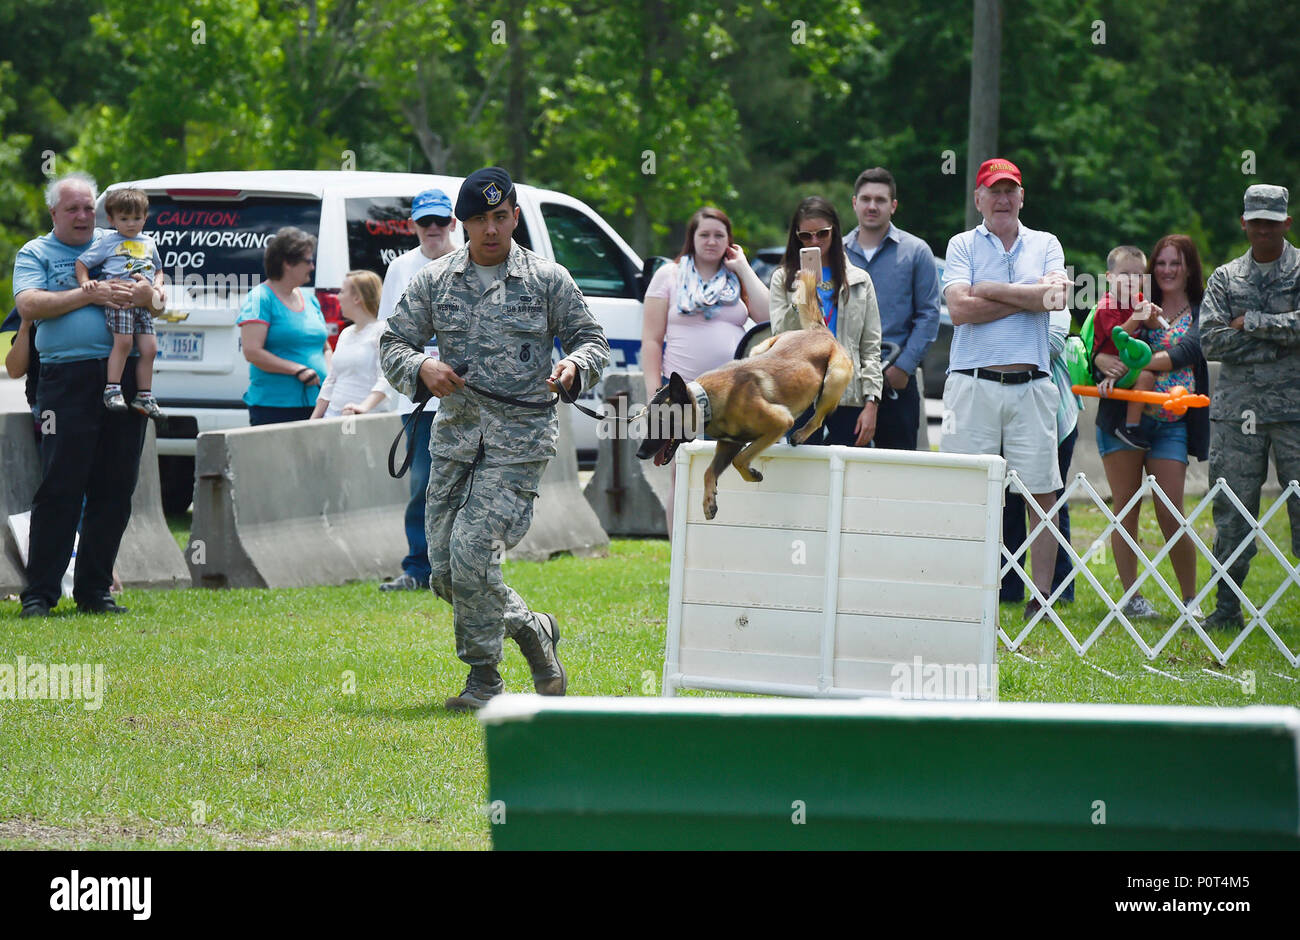 U.S. Air Force Senior Airman Trey Weston, 628th Security Forces Squadron military working dog handler, runs through an obstacle course with Ari, MWD, during a base picnic at the Air Base Picnic Grounds May 5, 2017, at Joint Base Charleston, S.C. Attendees were provided free meals were and able to participate in various activities including face painting, wall rock climbing, live music and a Military Working Dog demonstration. Stock Photo